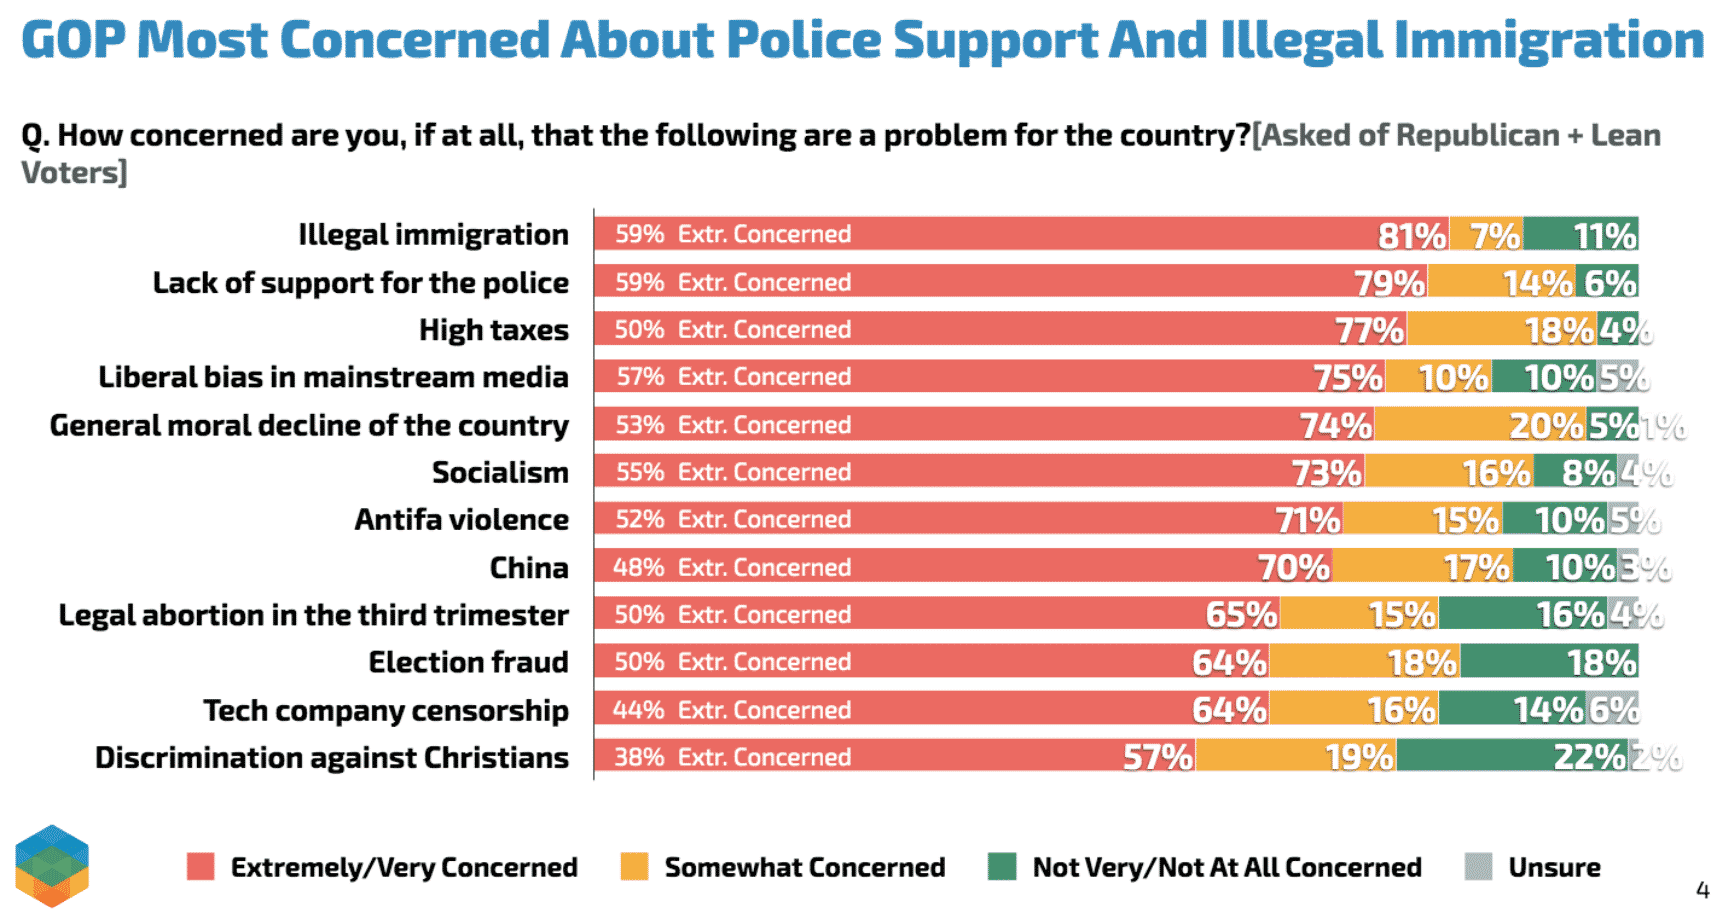 Survey: GOP Voters Are Most Concerned About Illegal Immigration to U.S. 1